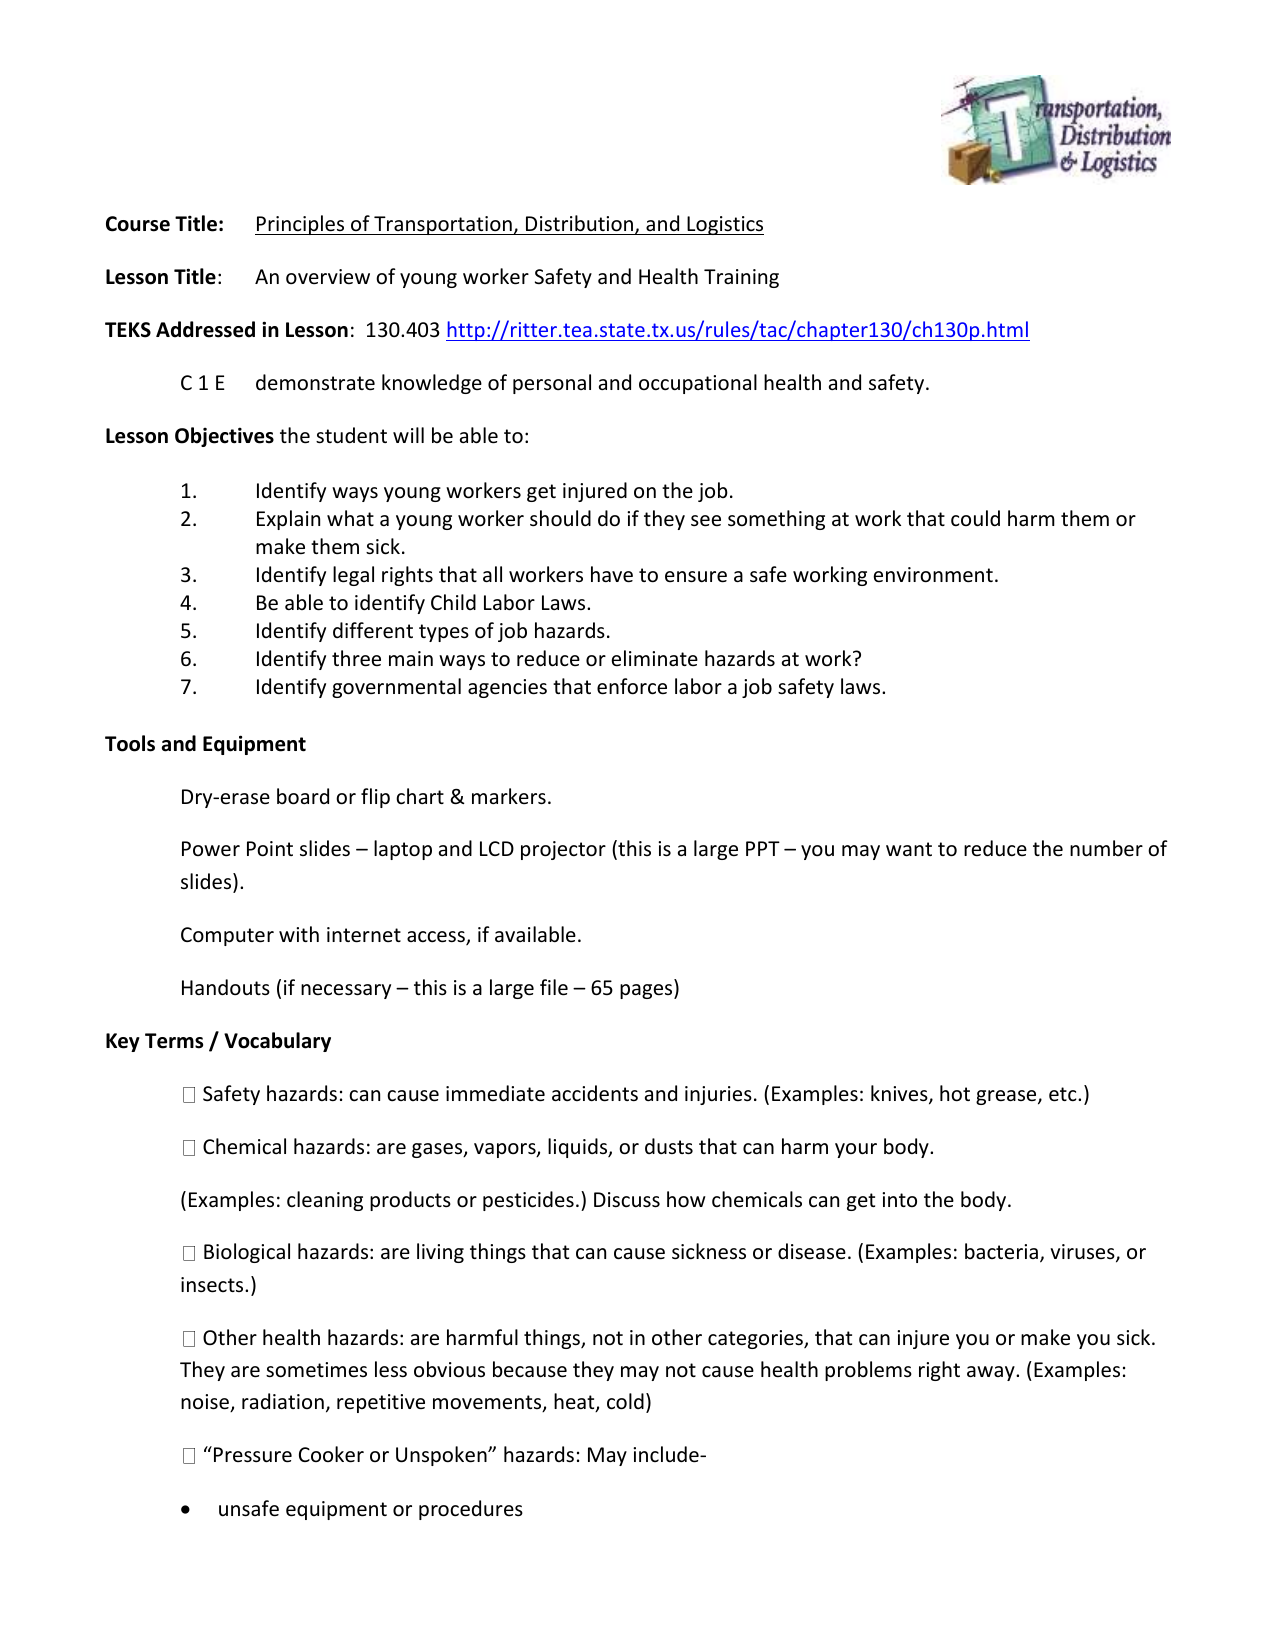 Personal & Occupational Safety lesson plan